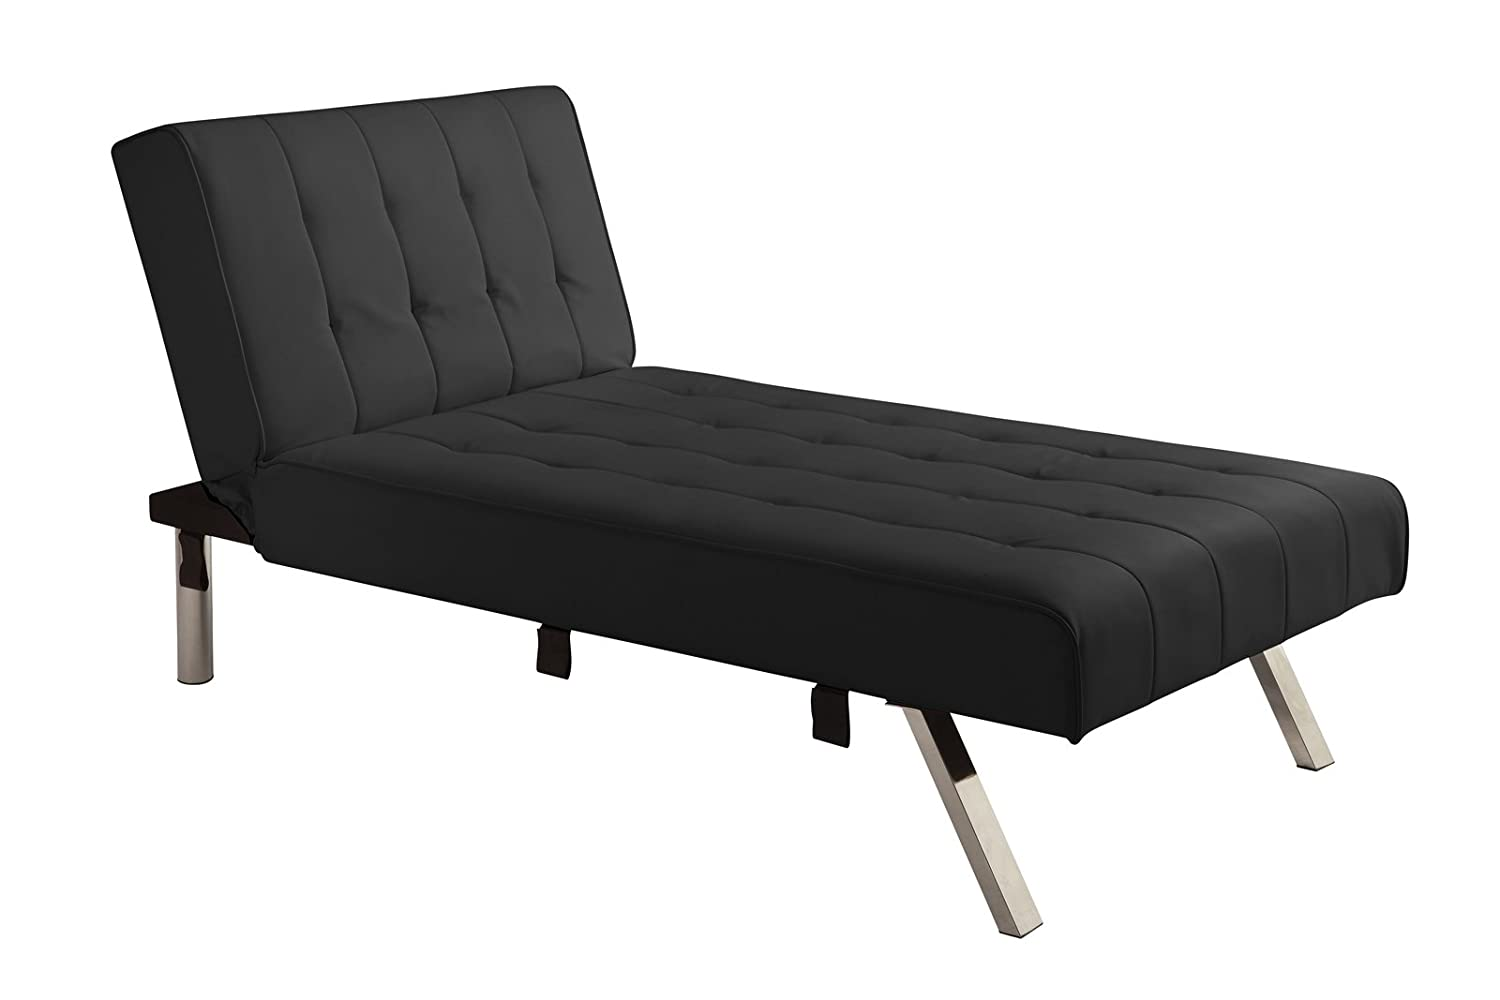 Amazon.com DHP Emily Linen Chaise Lounger Stylish Design with Chrome Legs Black Kitchen u0026 Dining  sc 1 st  Amazon.com : chaise furniture for sale - Sectionals, Sofas & Couches